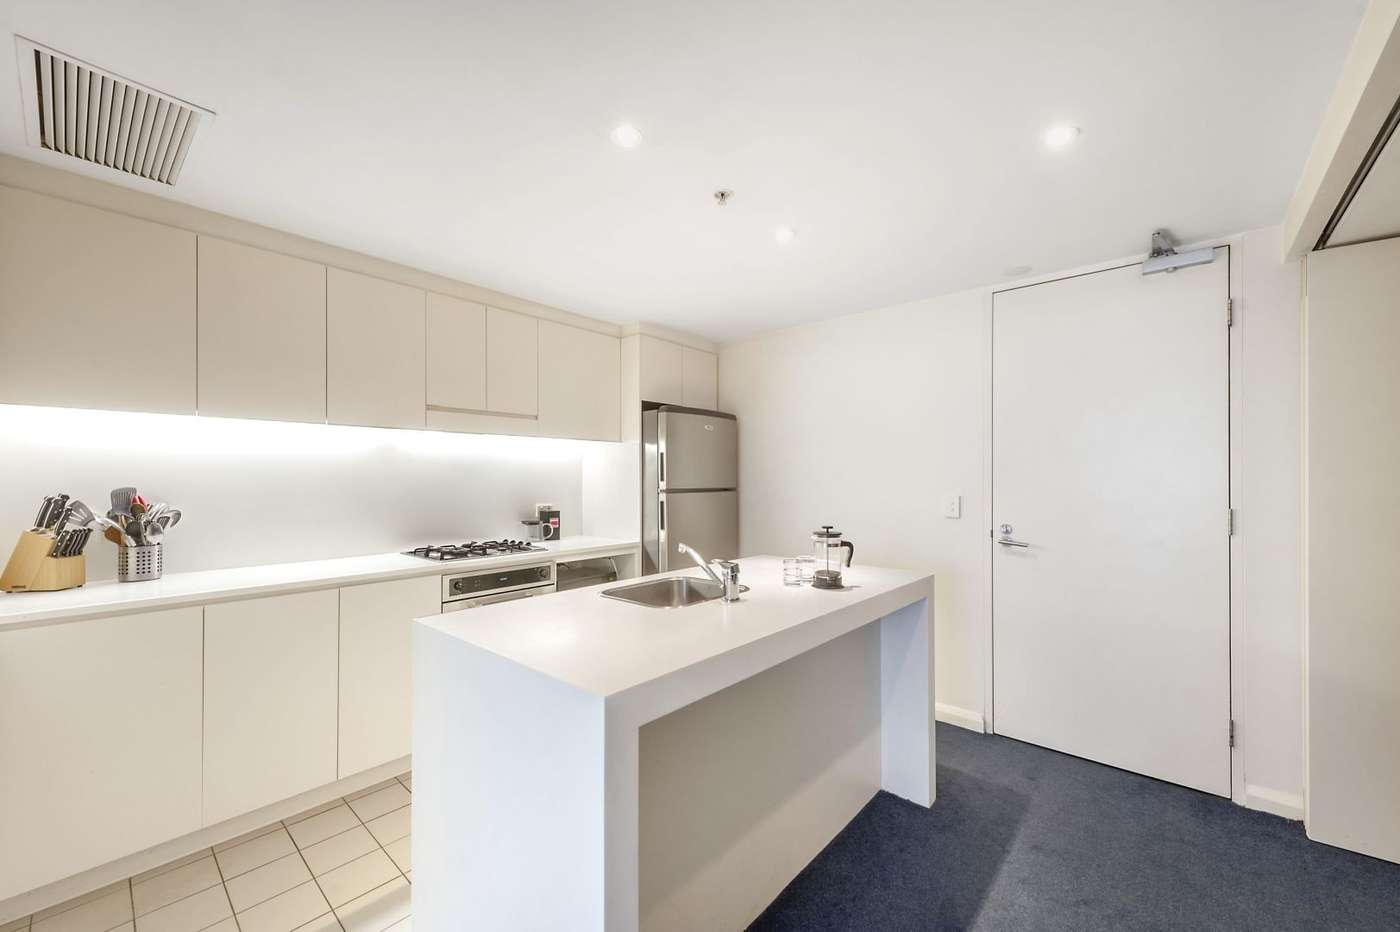 Main view of Homely apartment listing, 912/23 Shelley Street, Sydney, NSW 2000